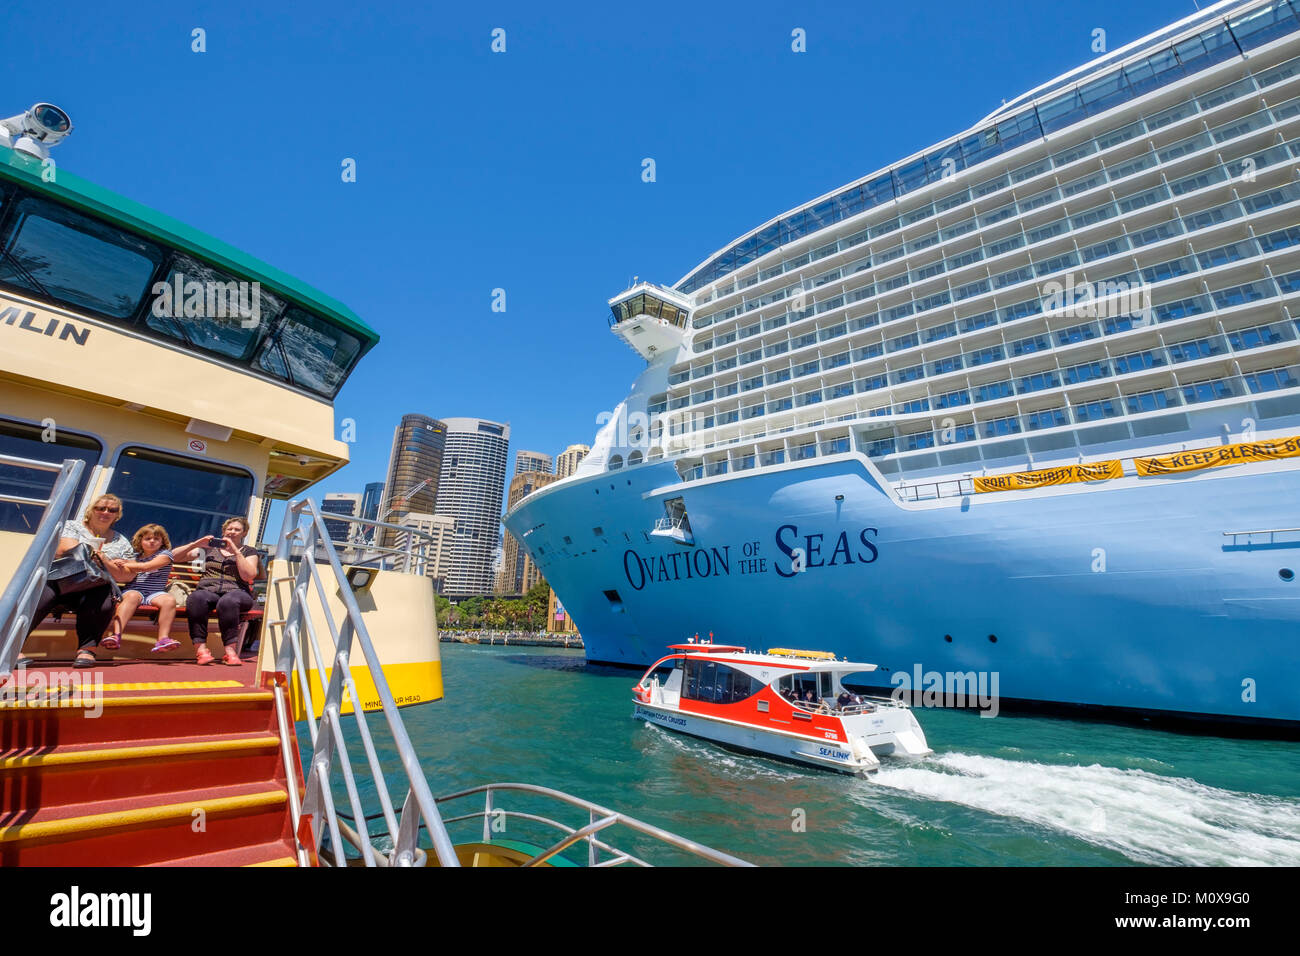 Sydney Ferry ride from Circular Quay. Passing Royal Caribbean's Ovation of the Seas cruise ship moored at Overseas - Stock Image